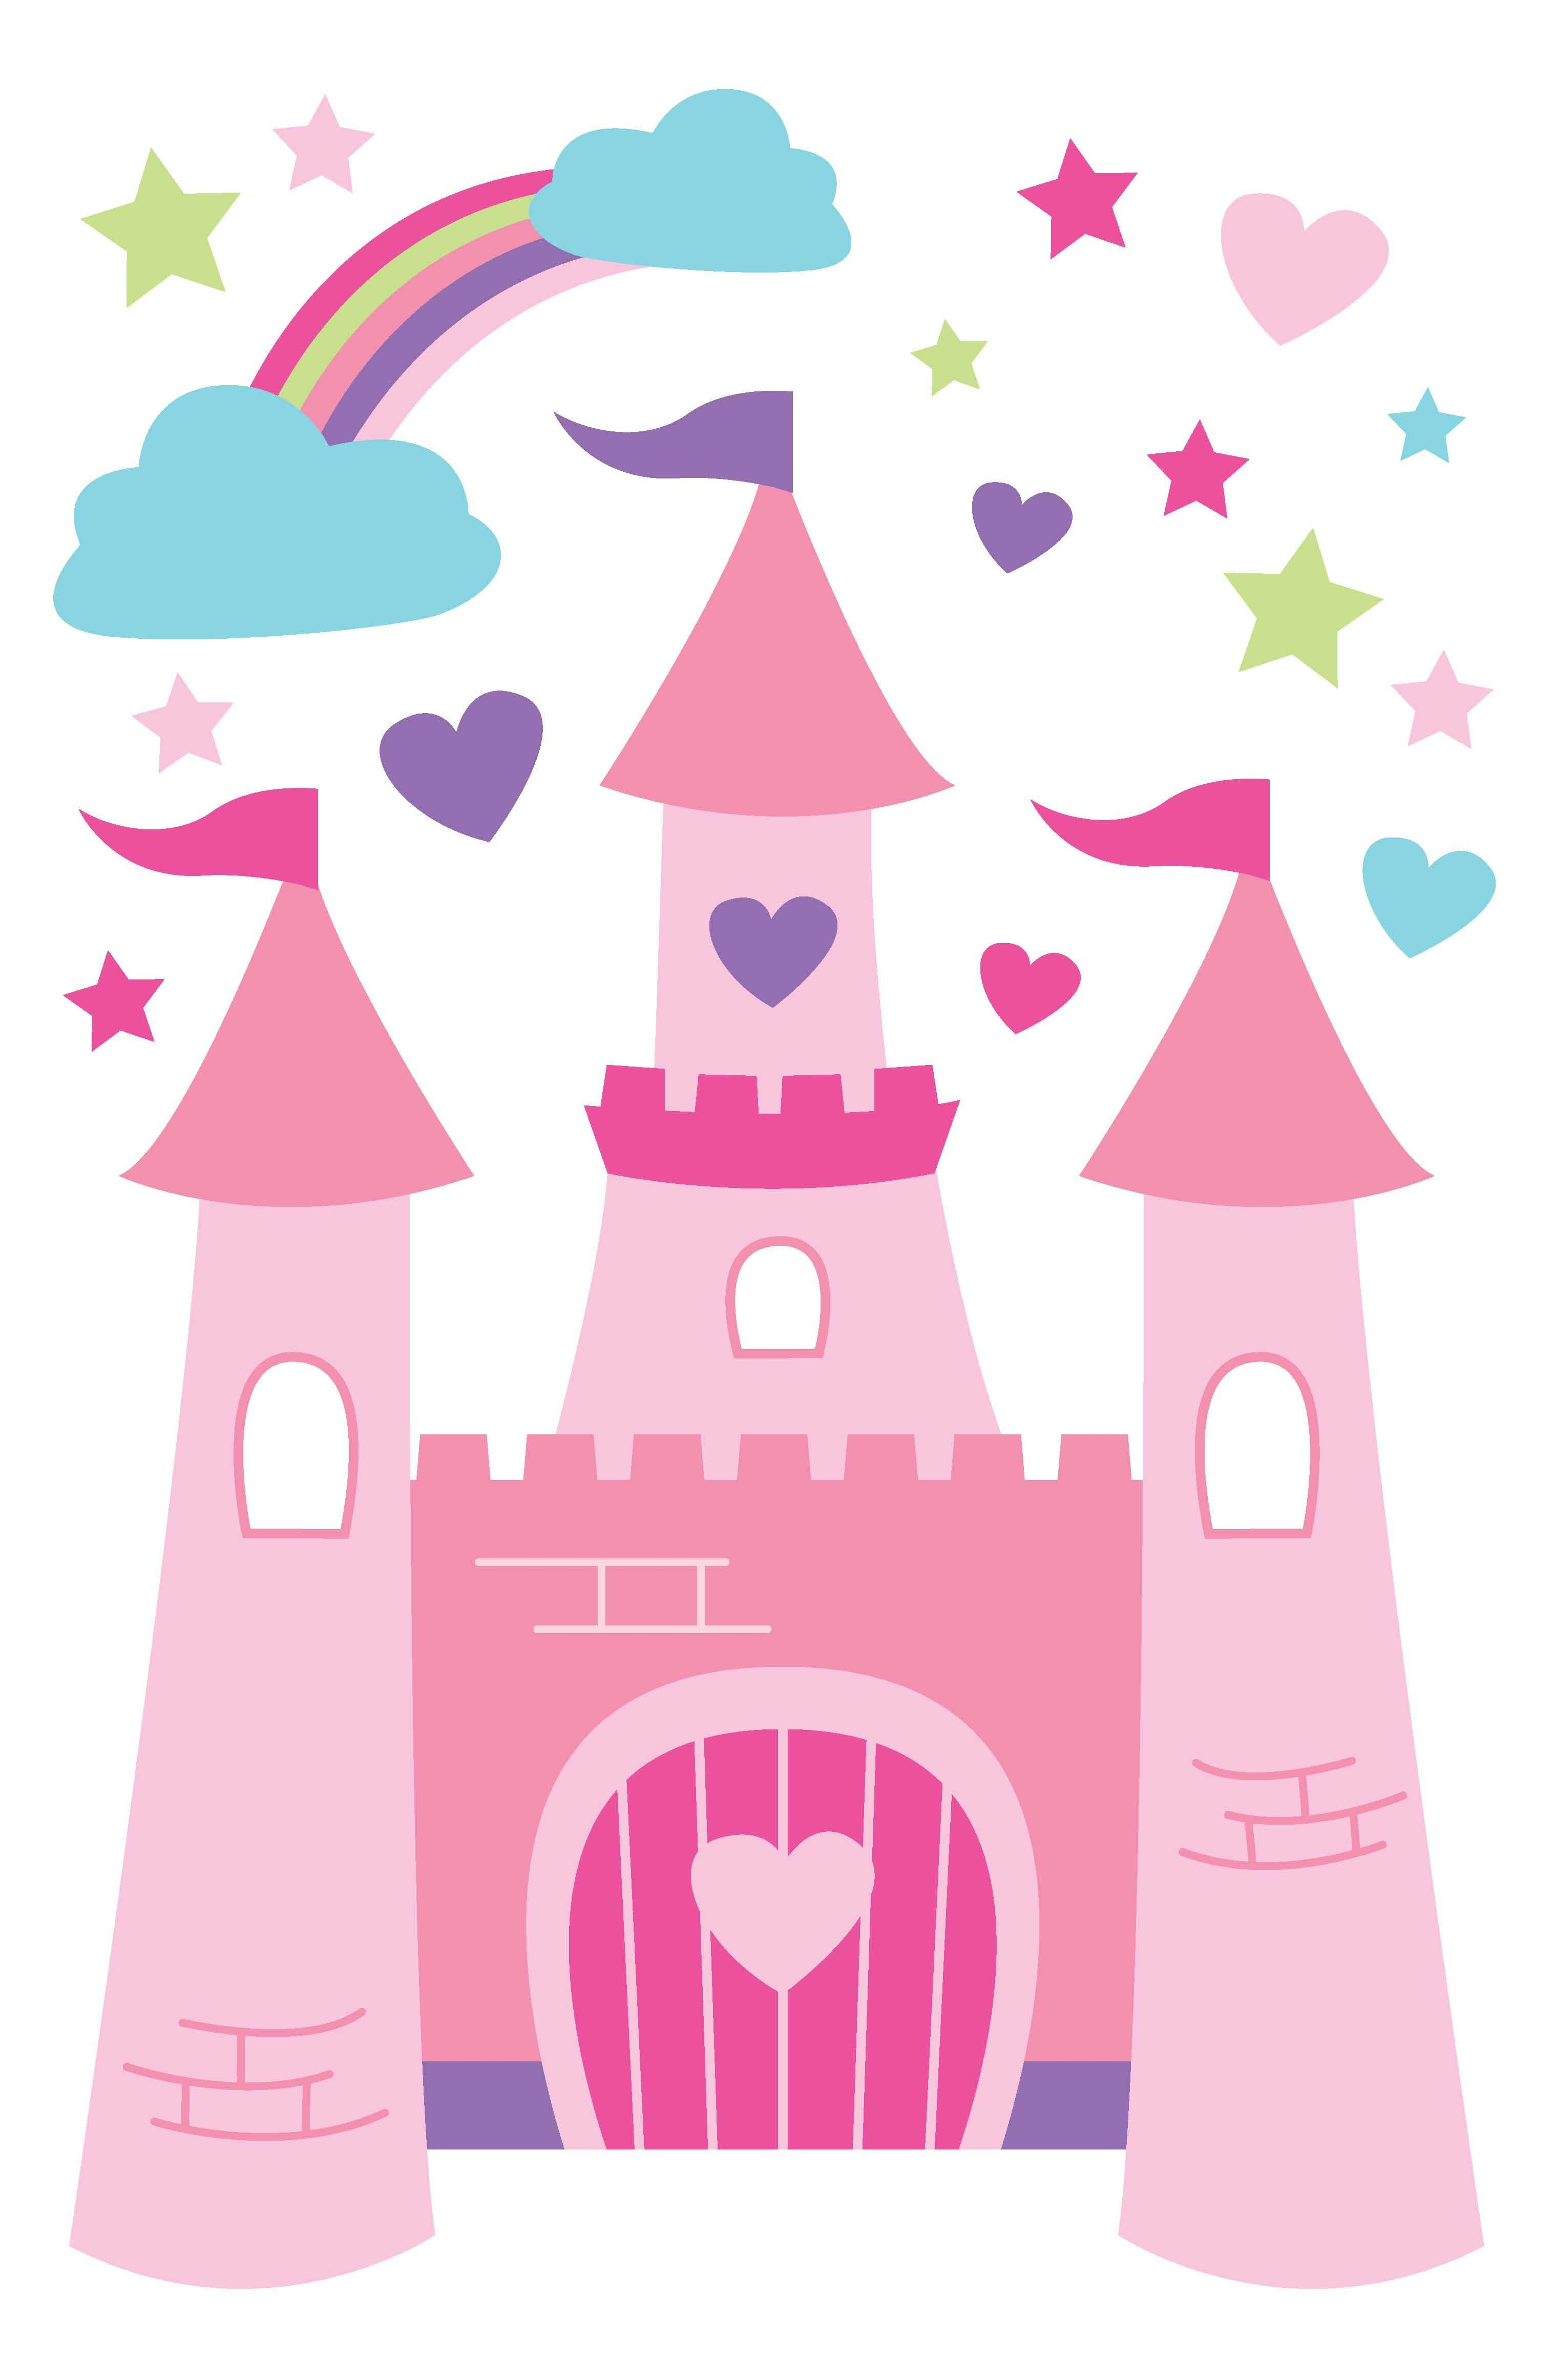 Clipart princess and castle scenes on pillowcase picture library library Pin by Elodie Saphoret on Pour les princesses | Princess castle ... picture library library